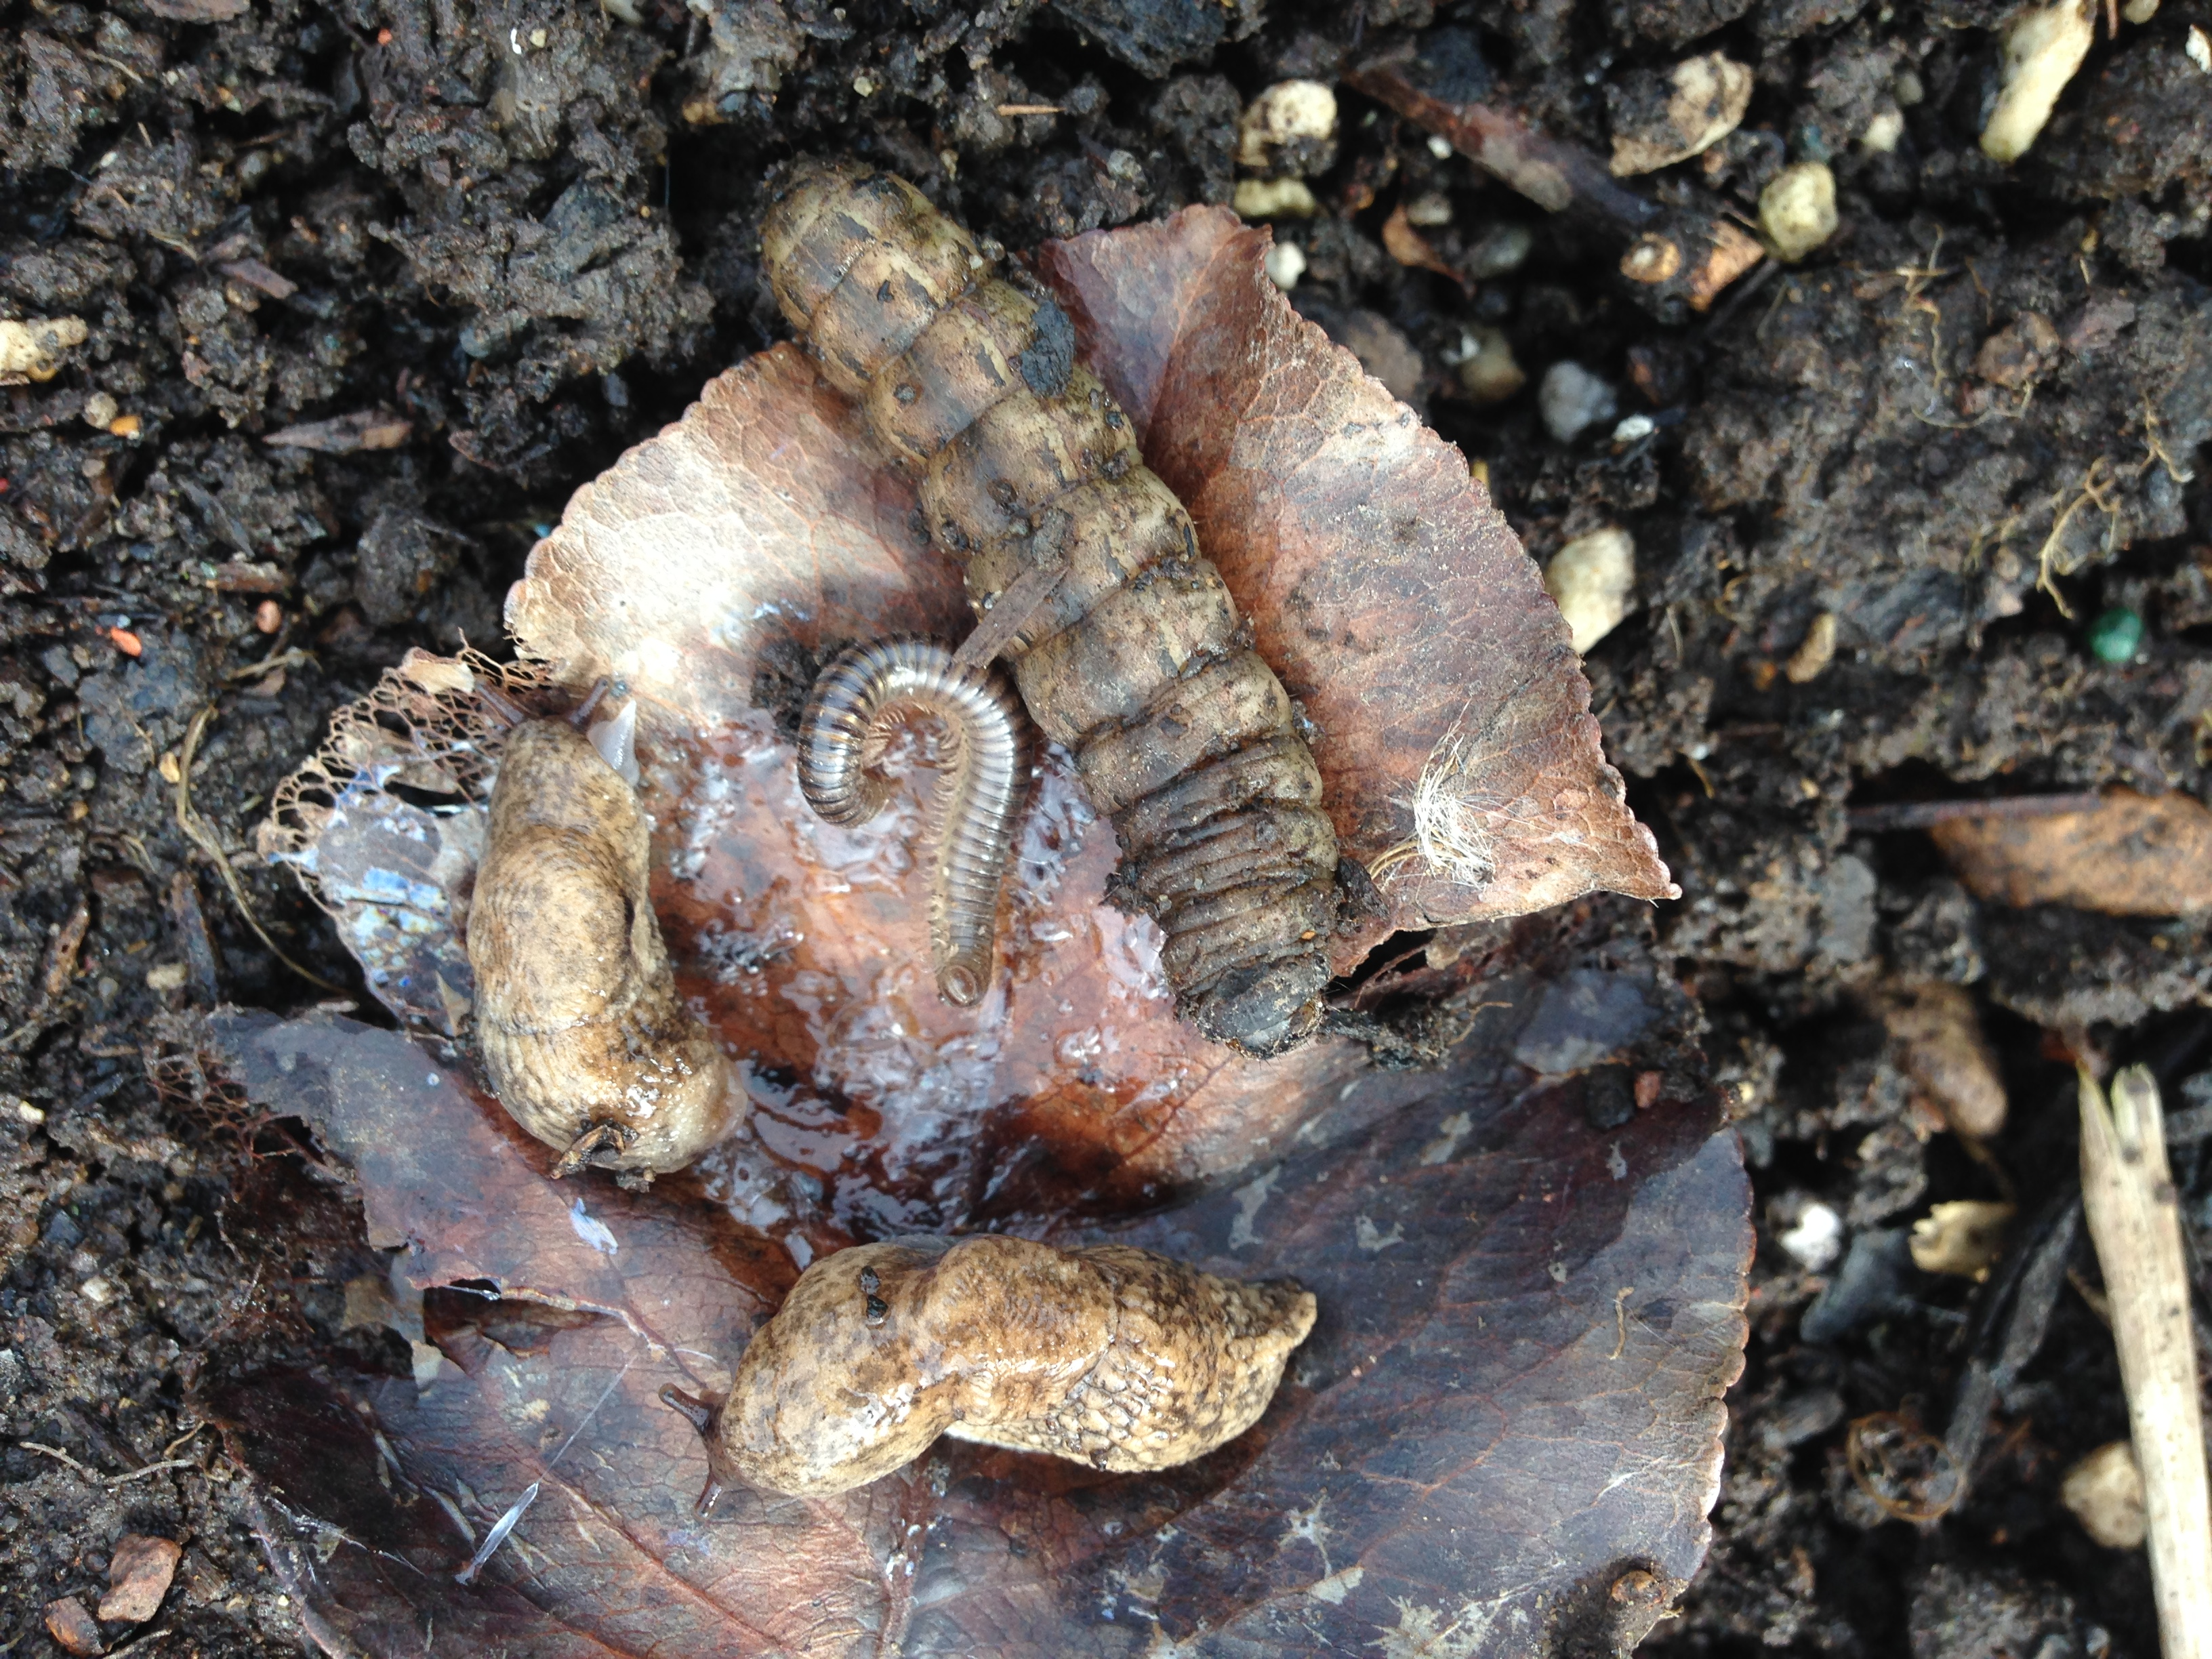 Millipedes, Slugs, and Cutworms! Oh my!